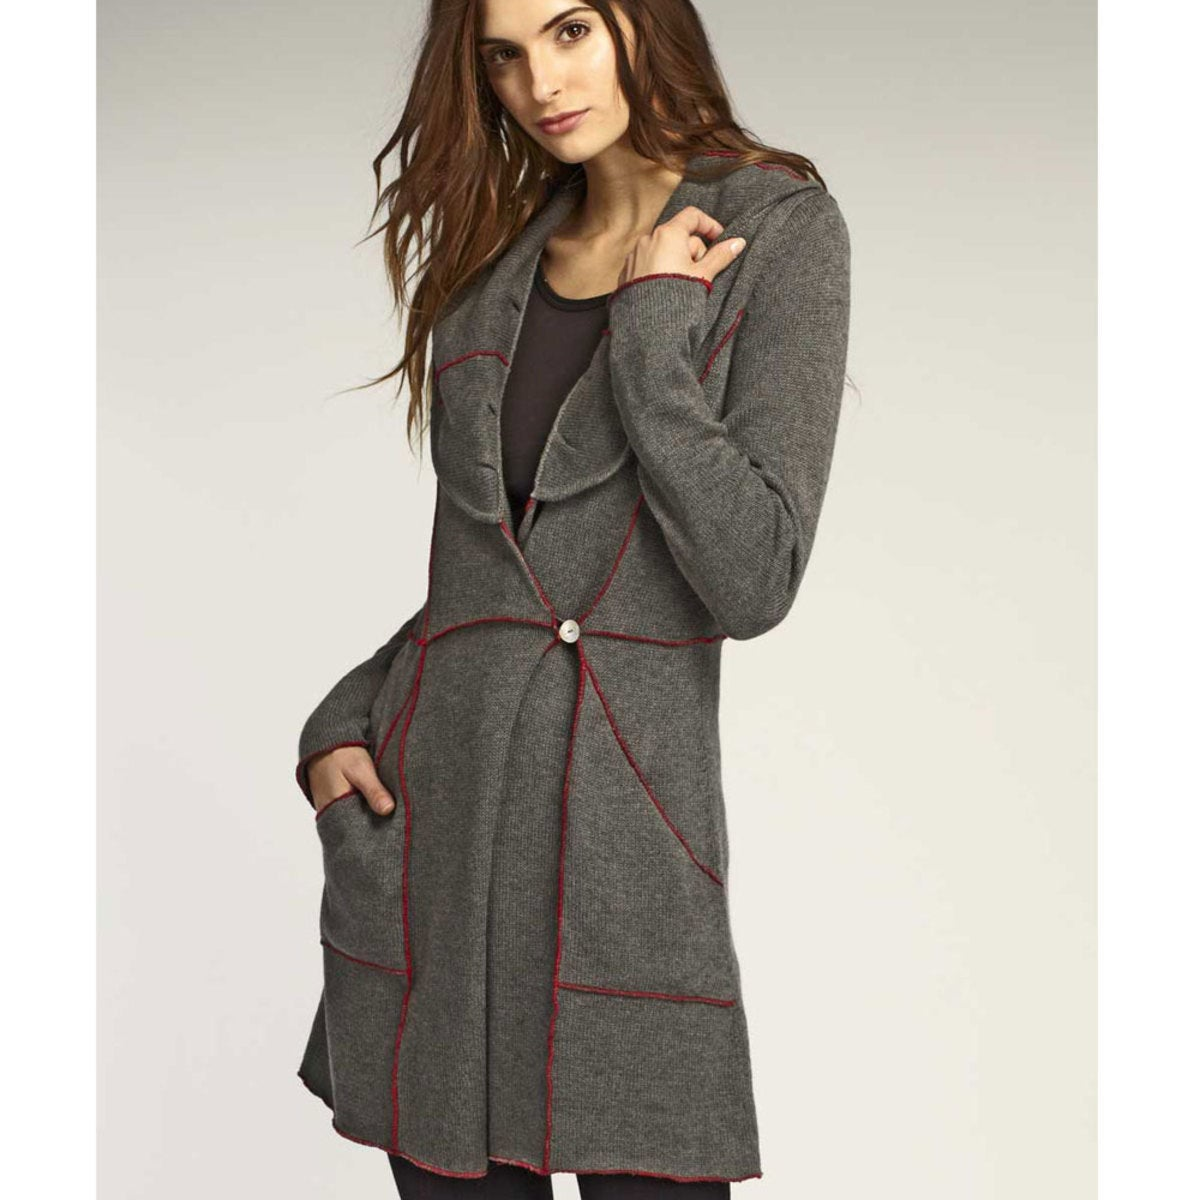 Chateau Luxe Coat (large 12-14) - Ash - S (4-6)